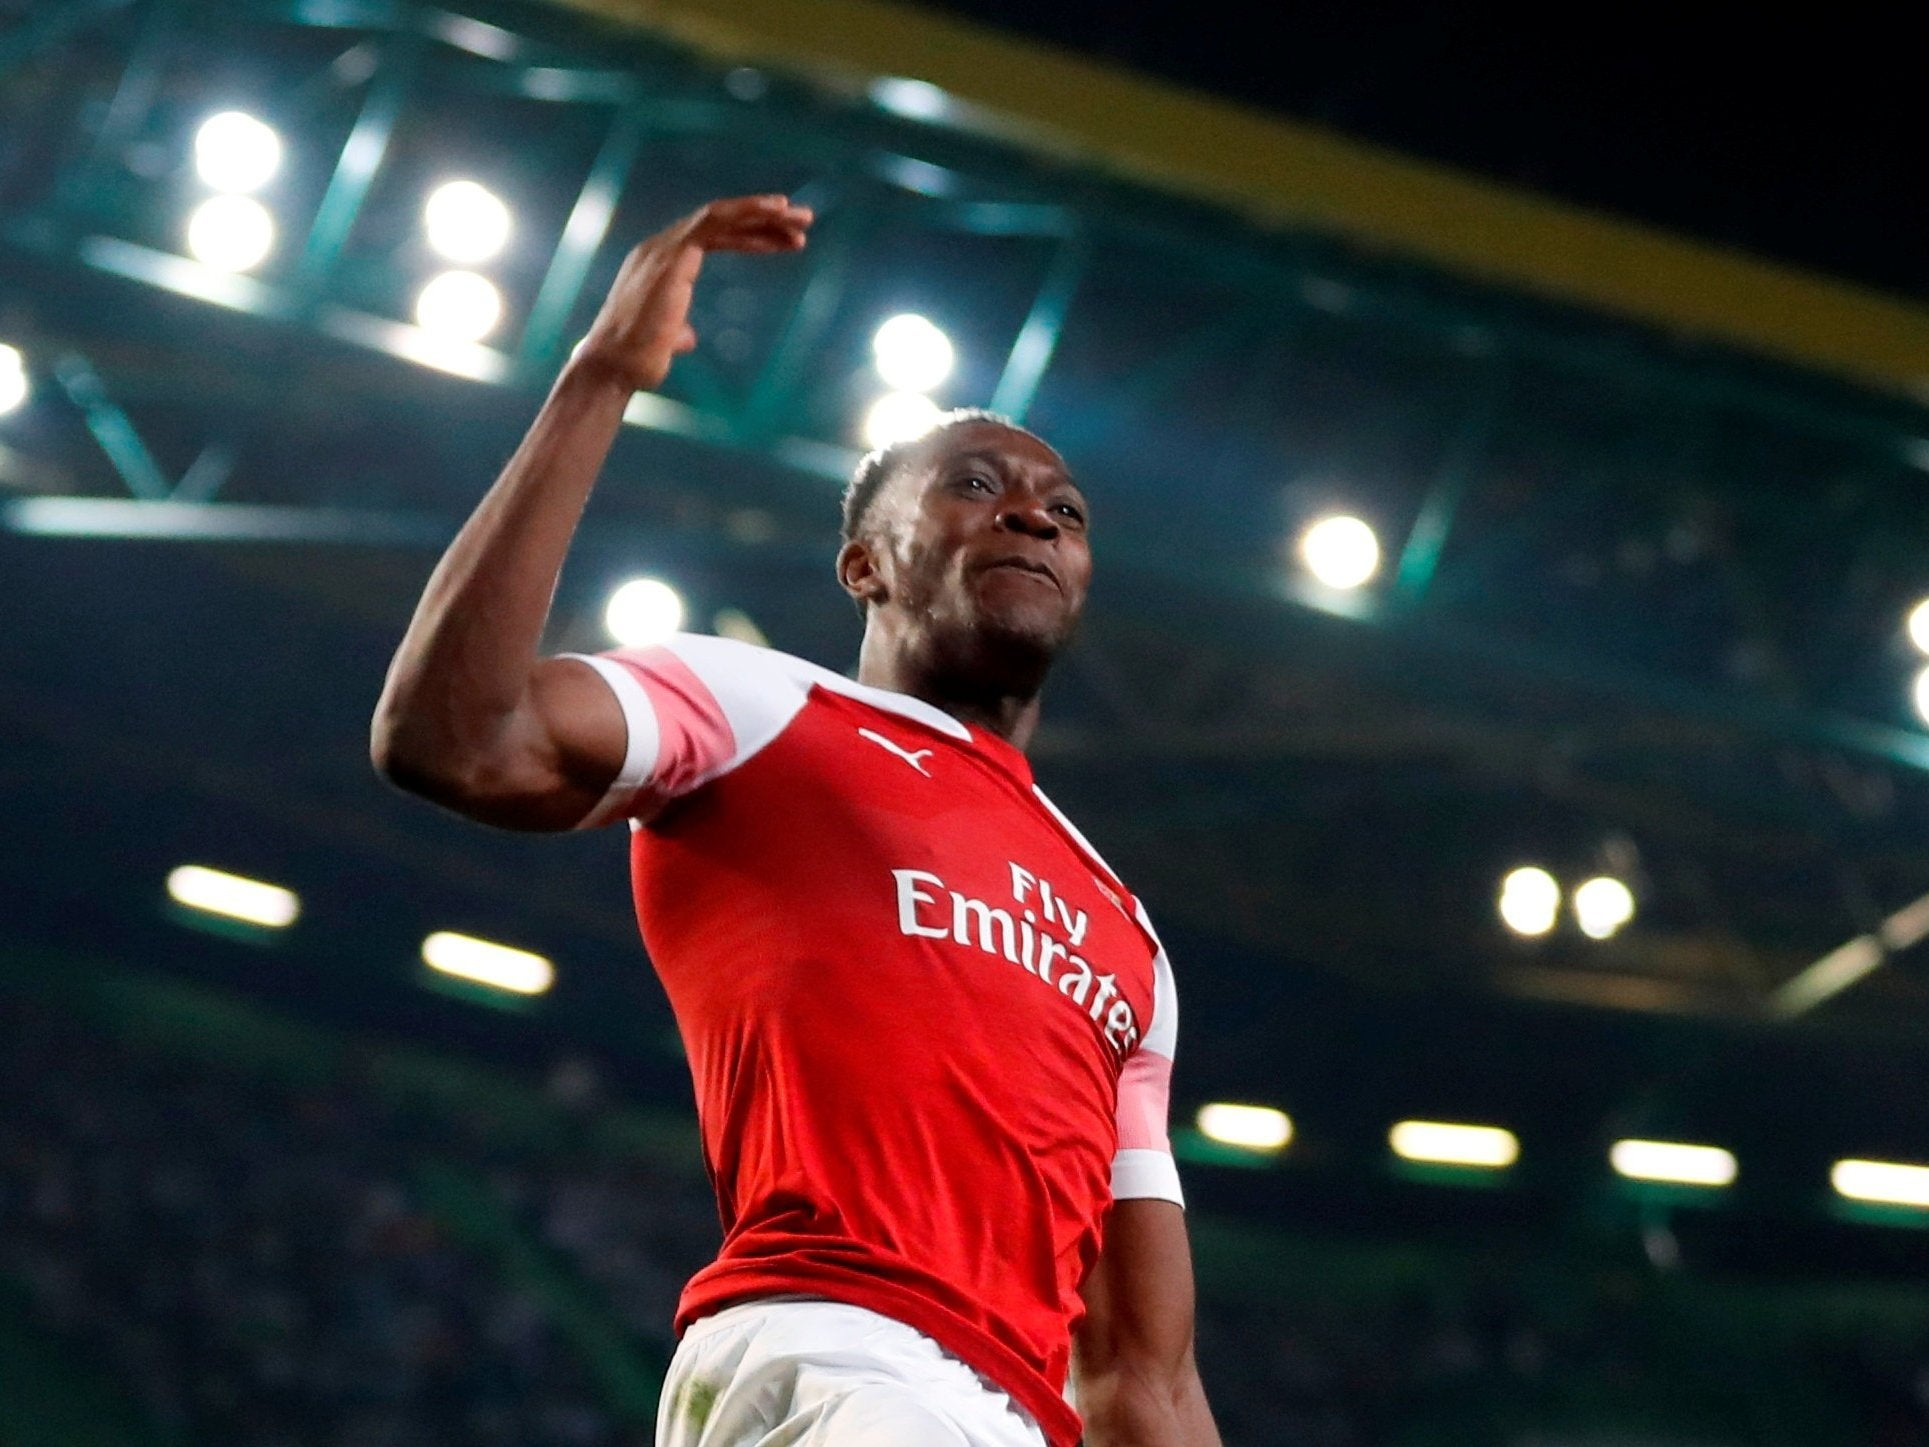 Sporting vs Arsenal player ratings: Danny Welbeck and Aaron Ramsey impress in Europa League win